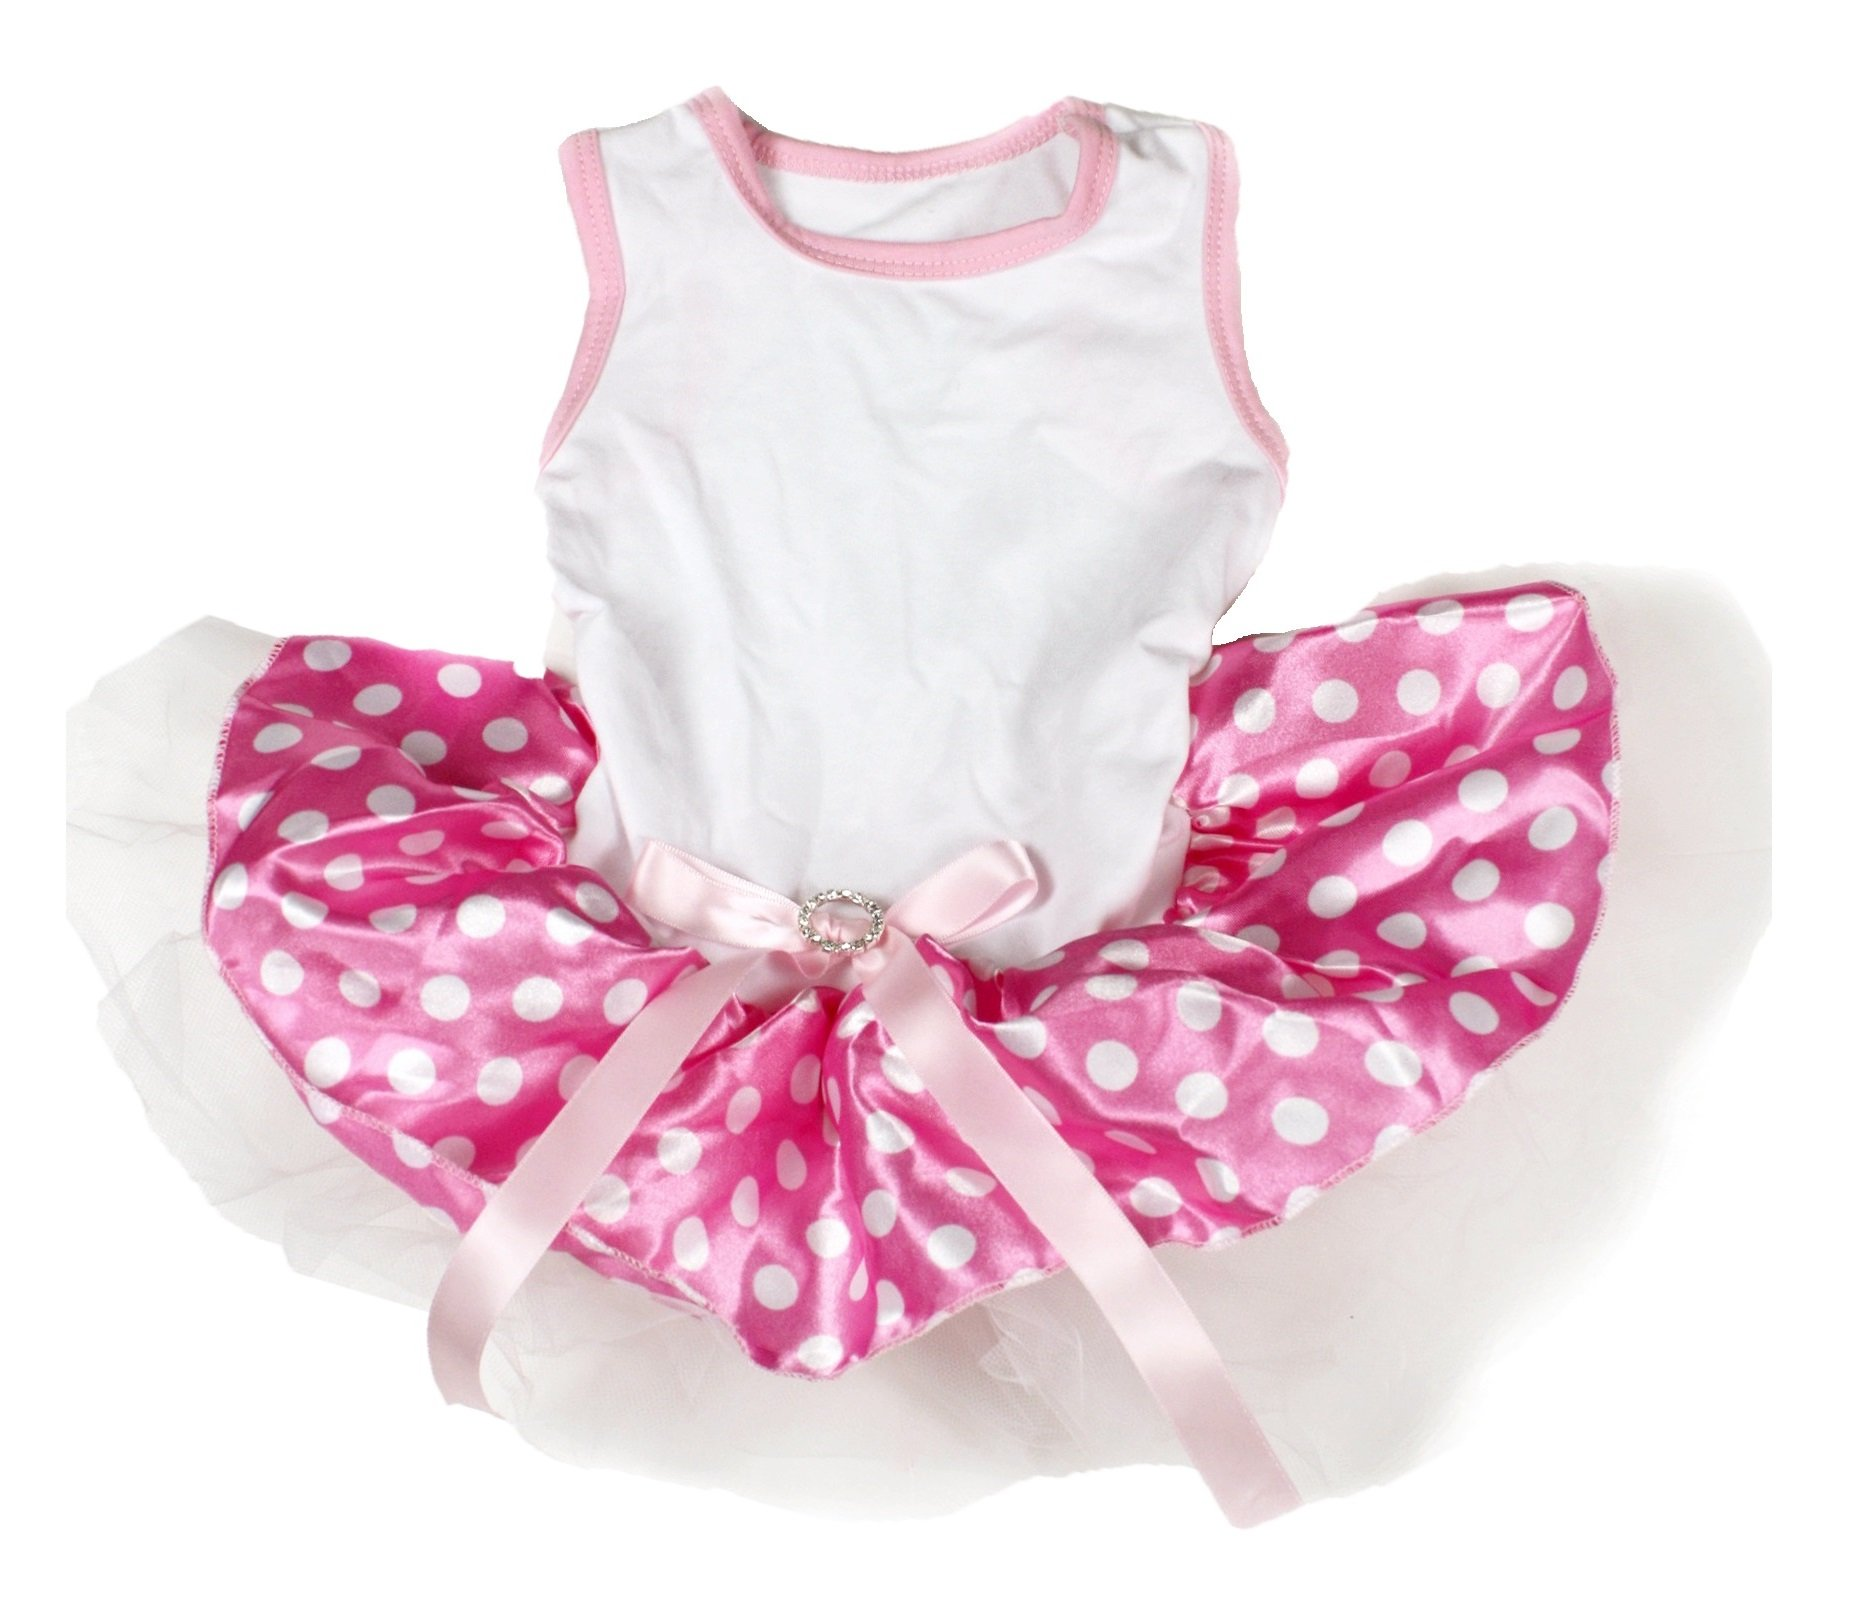 Puppy Clothes Dog Dress White Cotton Top Pink White Polka Dots Tutu Animal Wear (Medium) by Petitebella (Image #1)